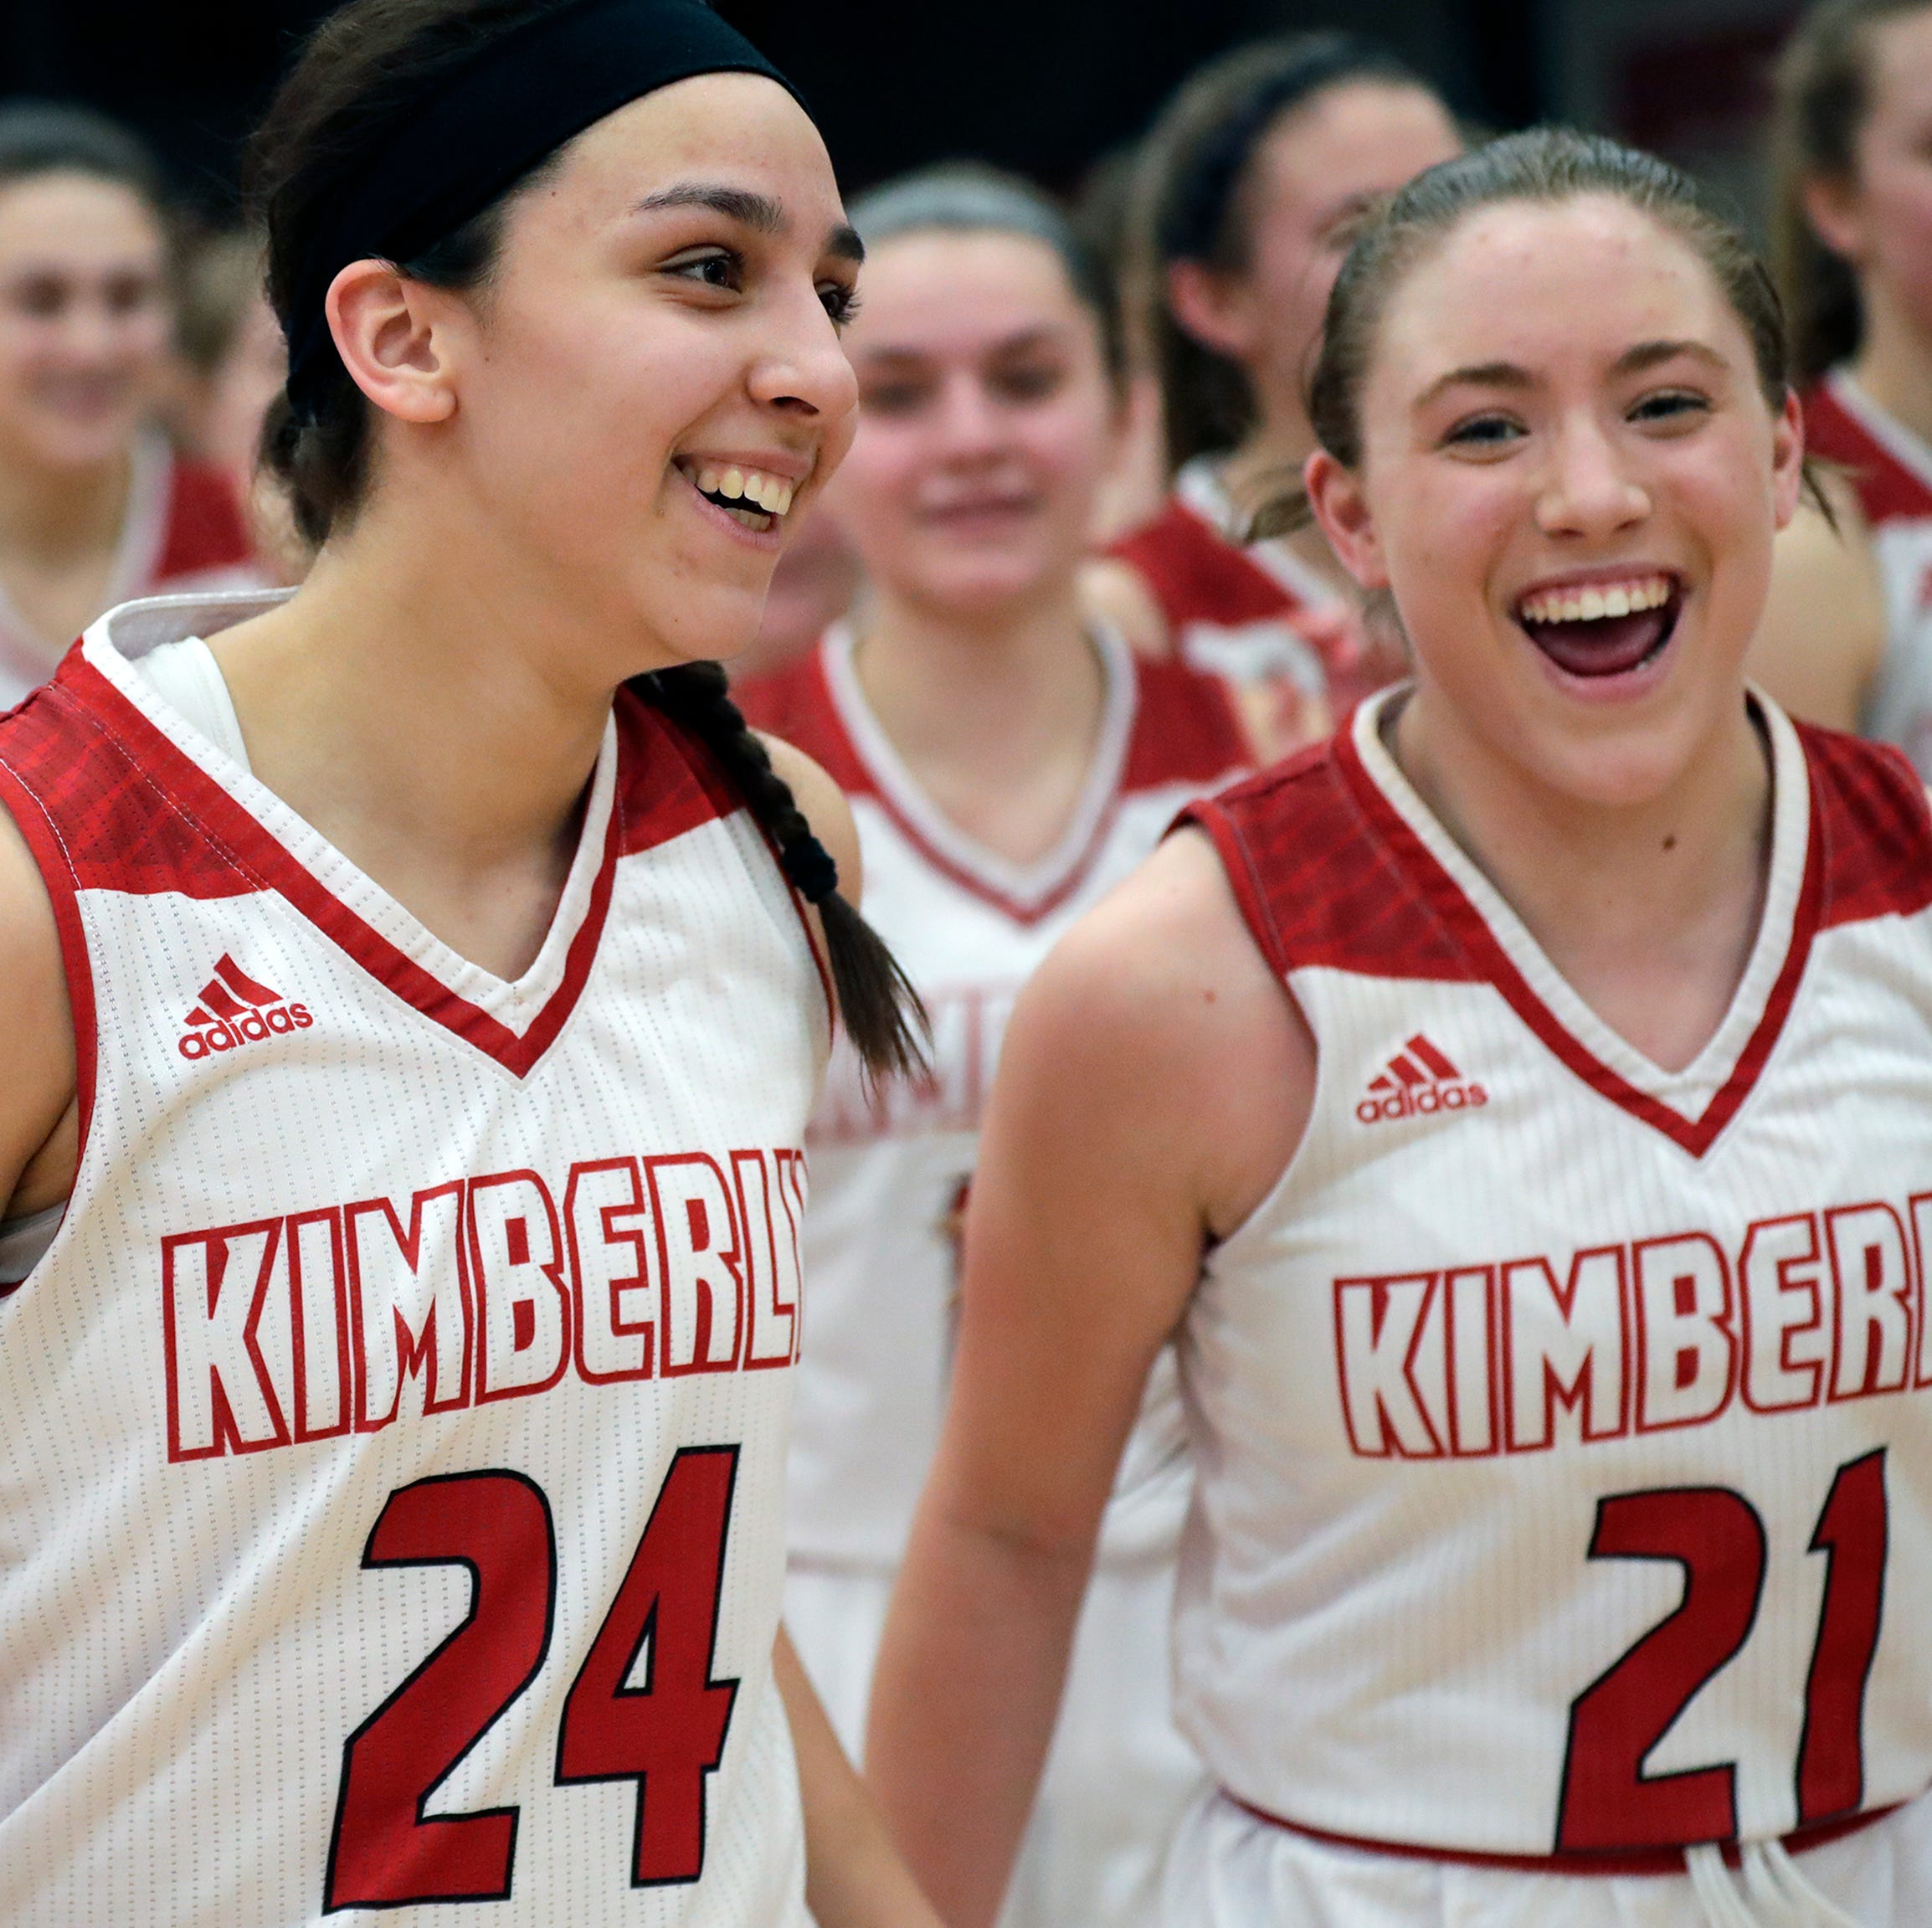 WIAA state girls basketball: Kimberly Papermakers hoping their defense can contain Bay Port